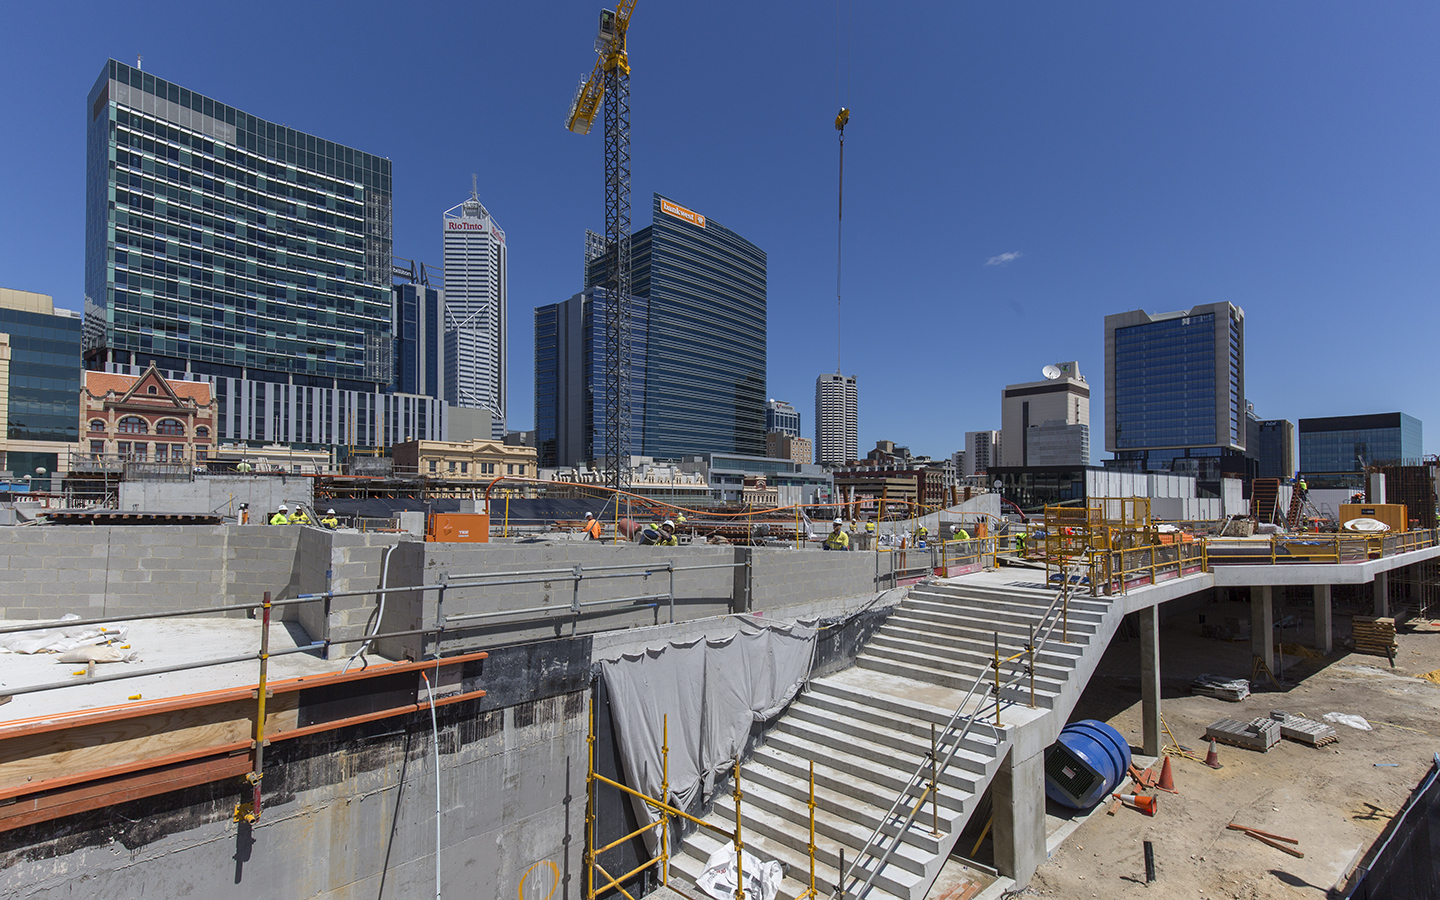 Yagan Square - Hera Engineering